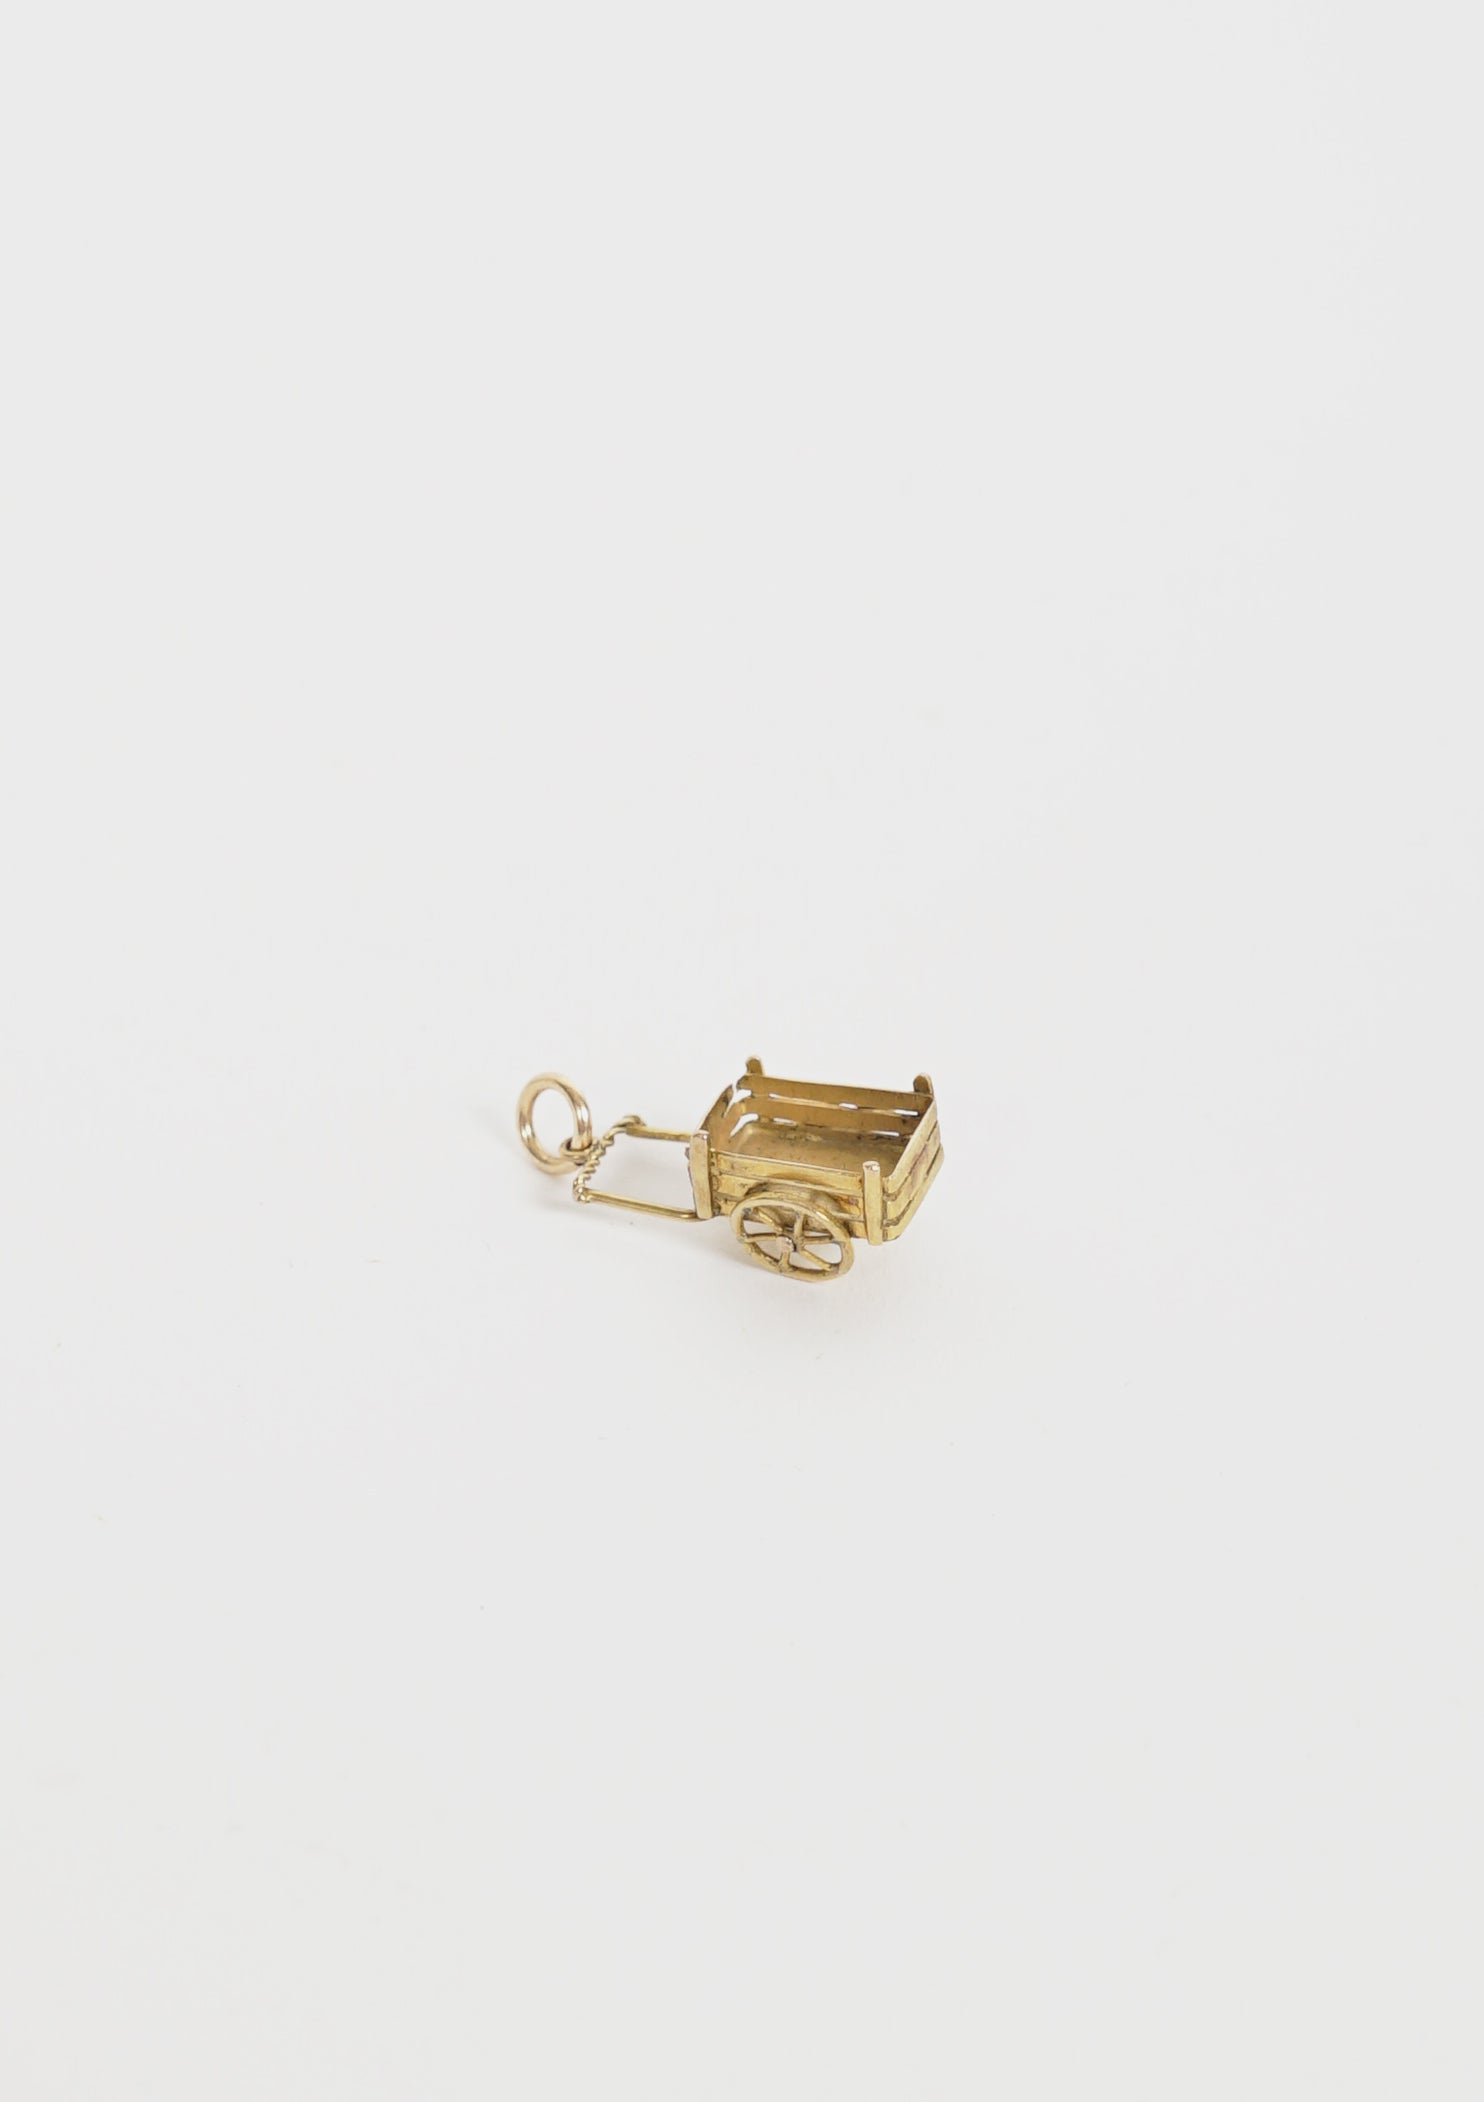 Gold Carriage Charm